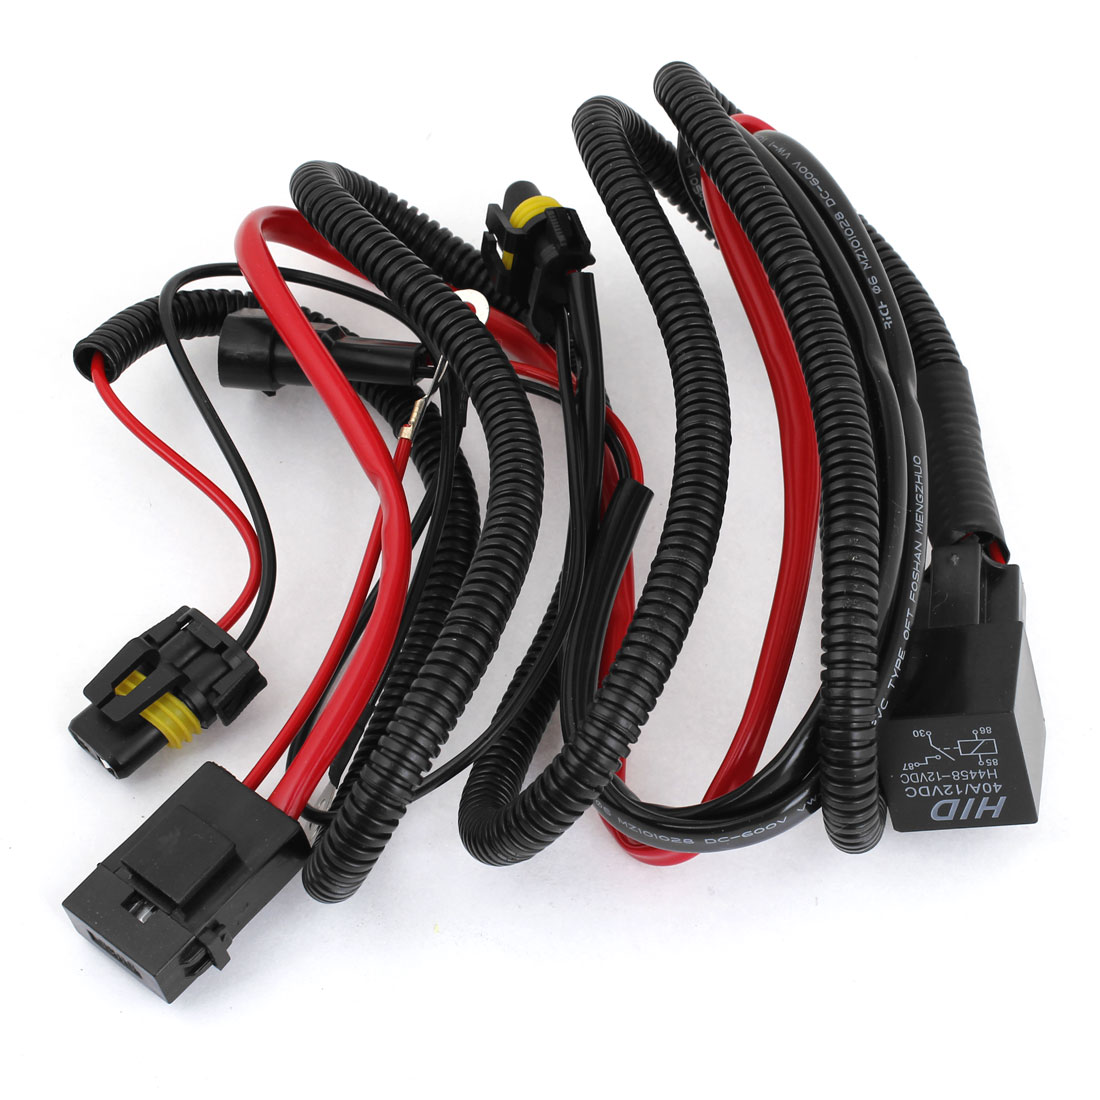 Unique Bargains Vehicles Car 9006 HID Xenon Headlight Fog Lamp Fuse Relay Wire Harness DC 12V